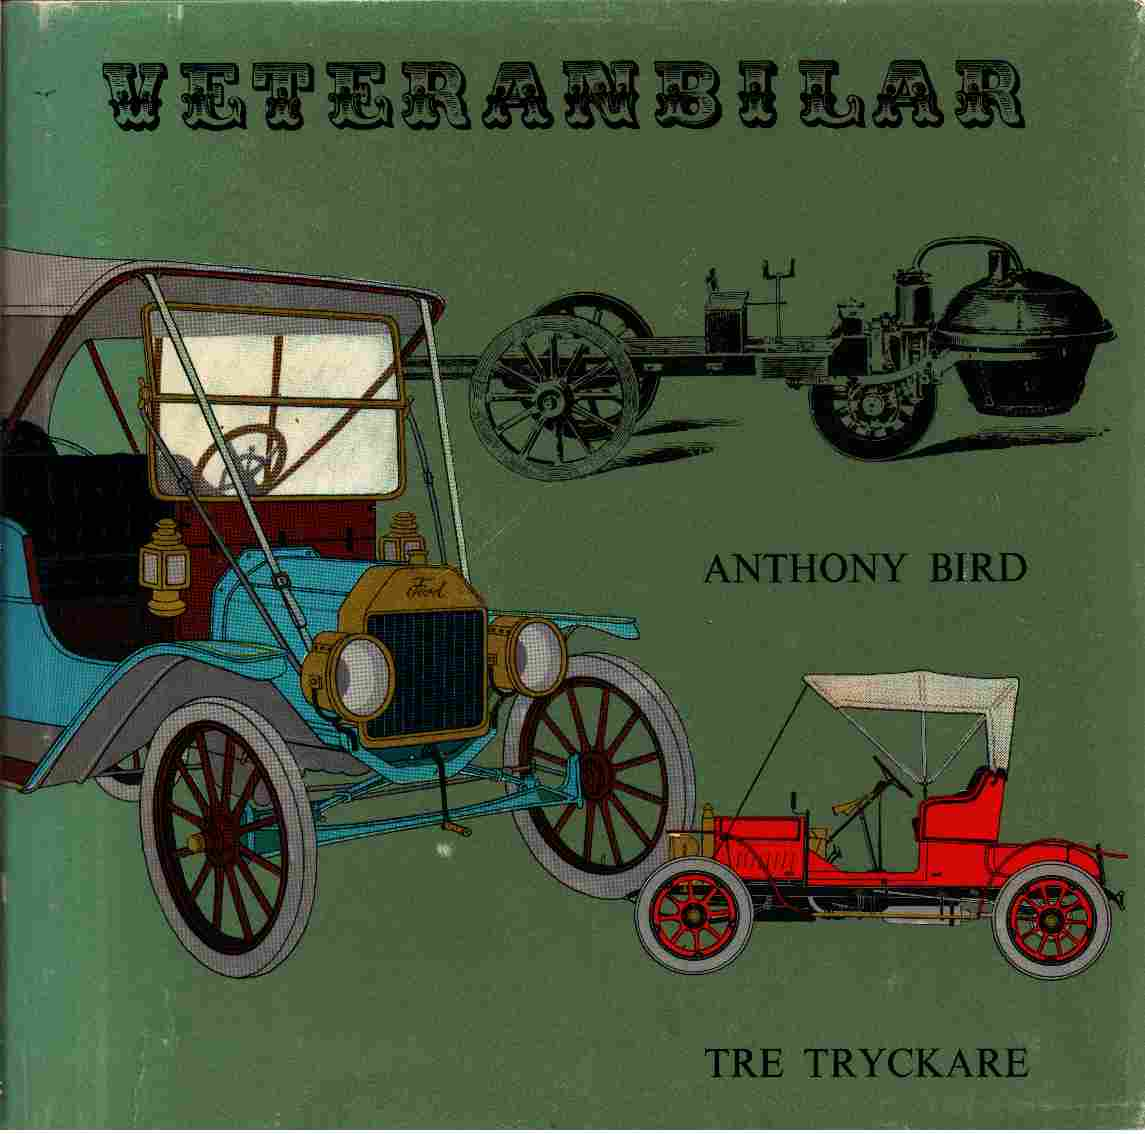 Veteranbilar - Bird, Anthony